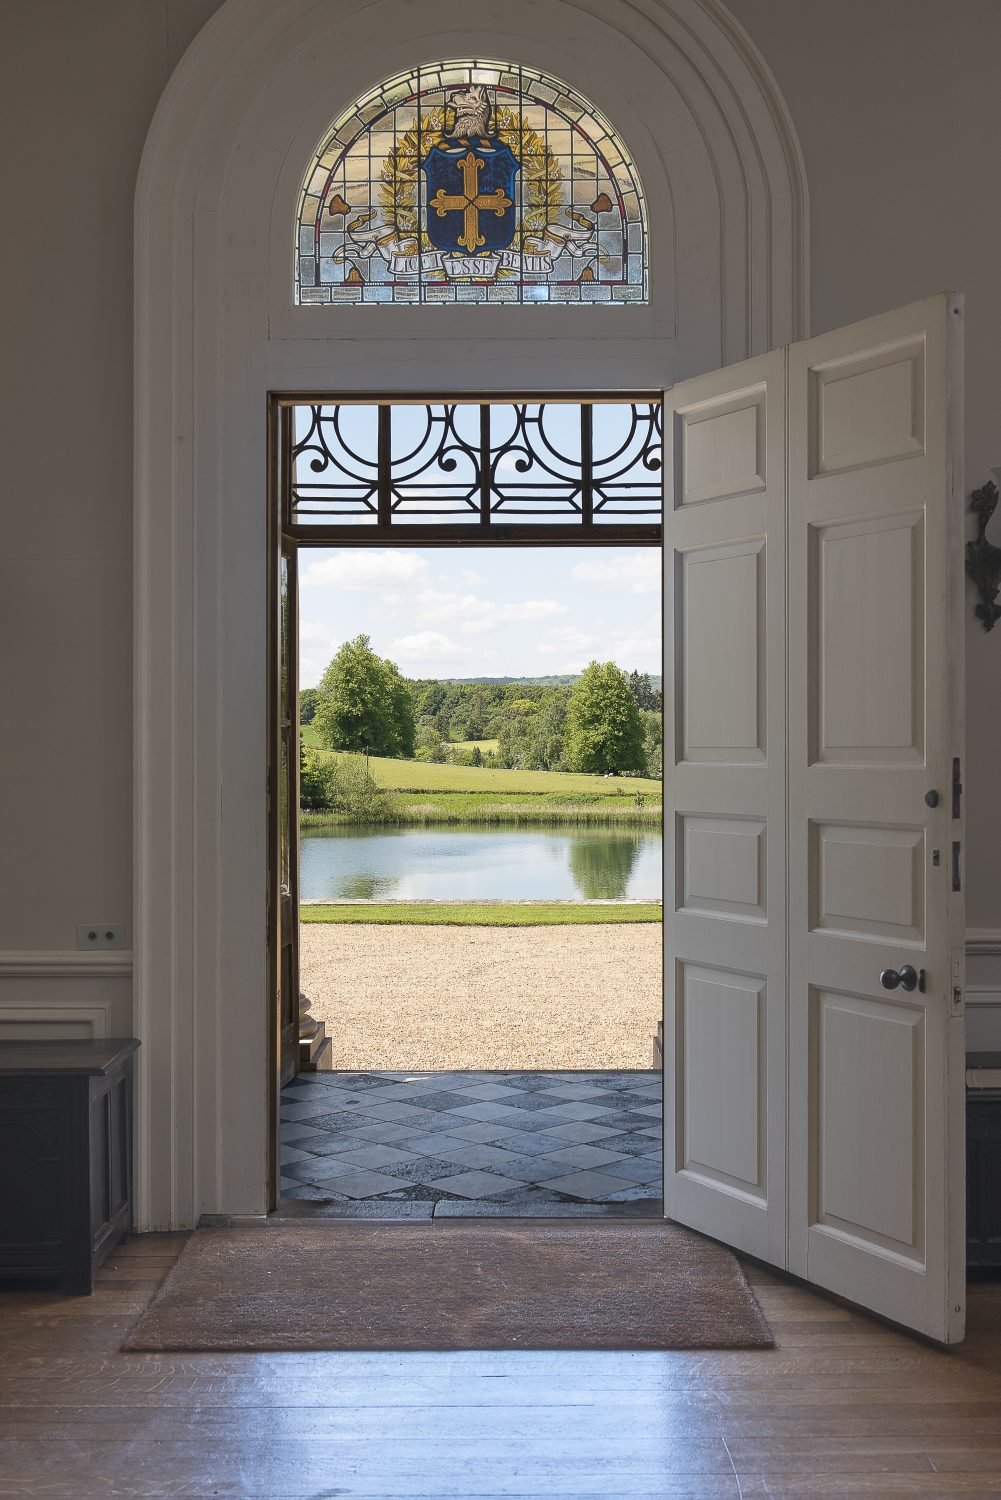 Beautiful views over the lake to the west of Squerryes. The family motto immortalised in stained glass Below: The formal back garden was designed by Henry's mother Anthea to a more formal design she found on old plans